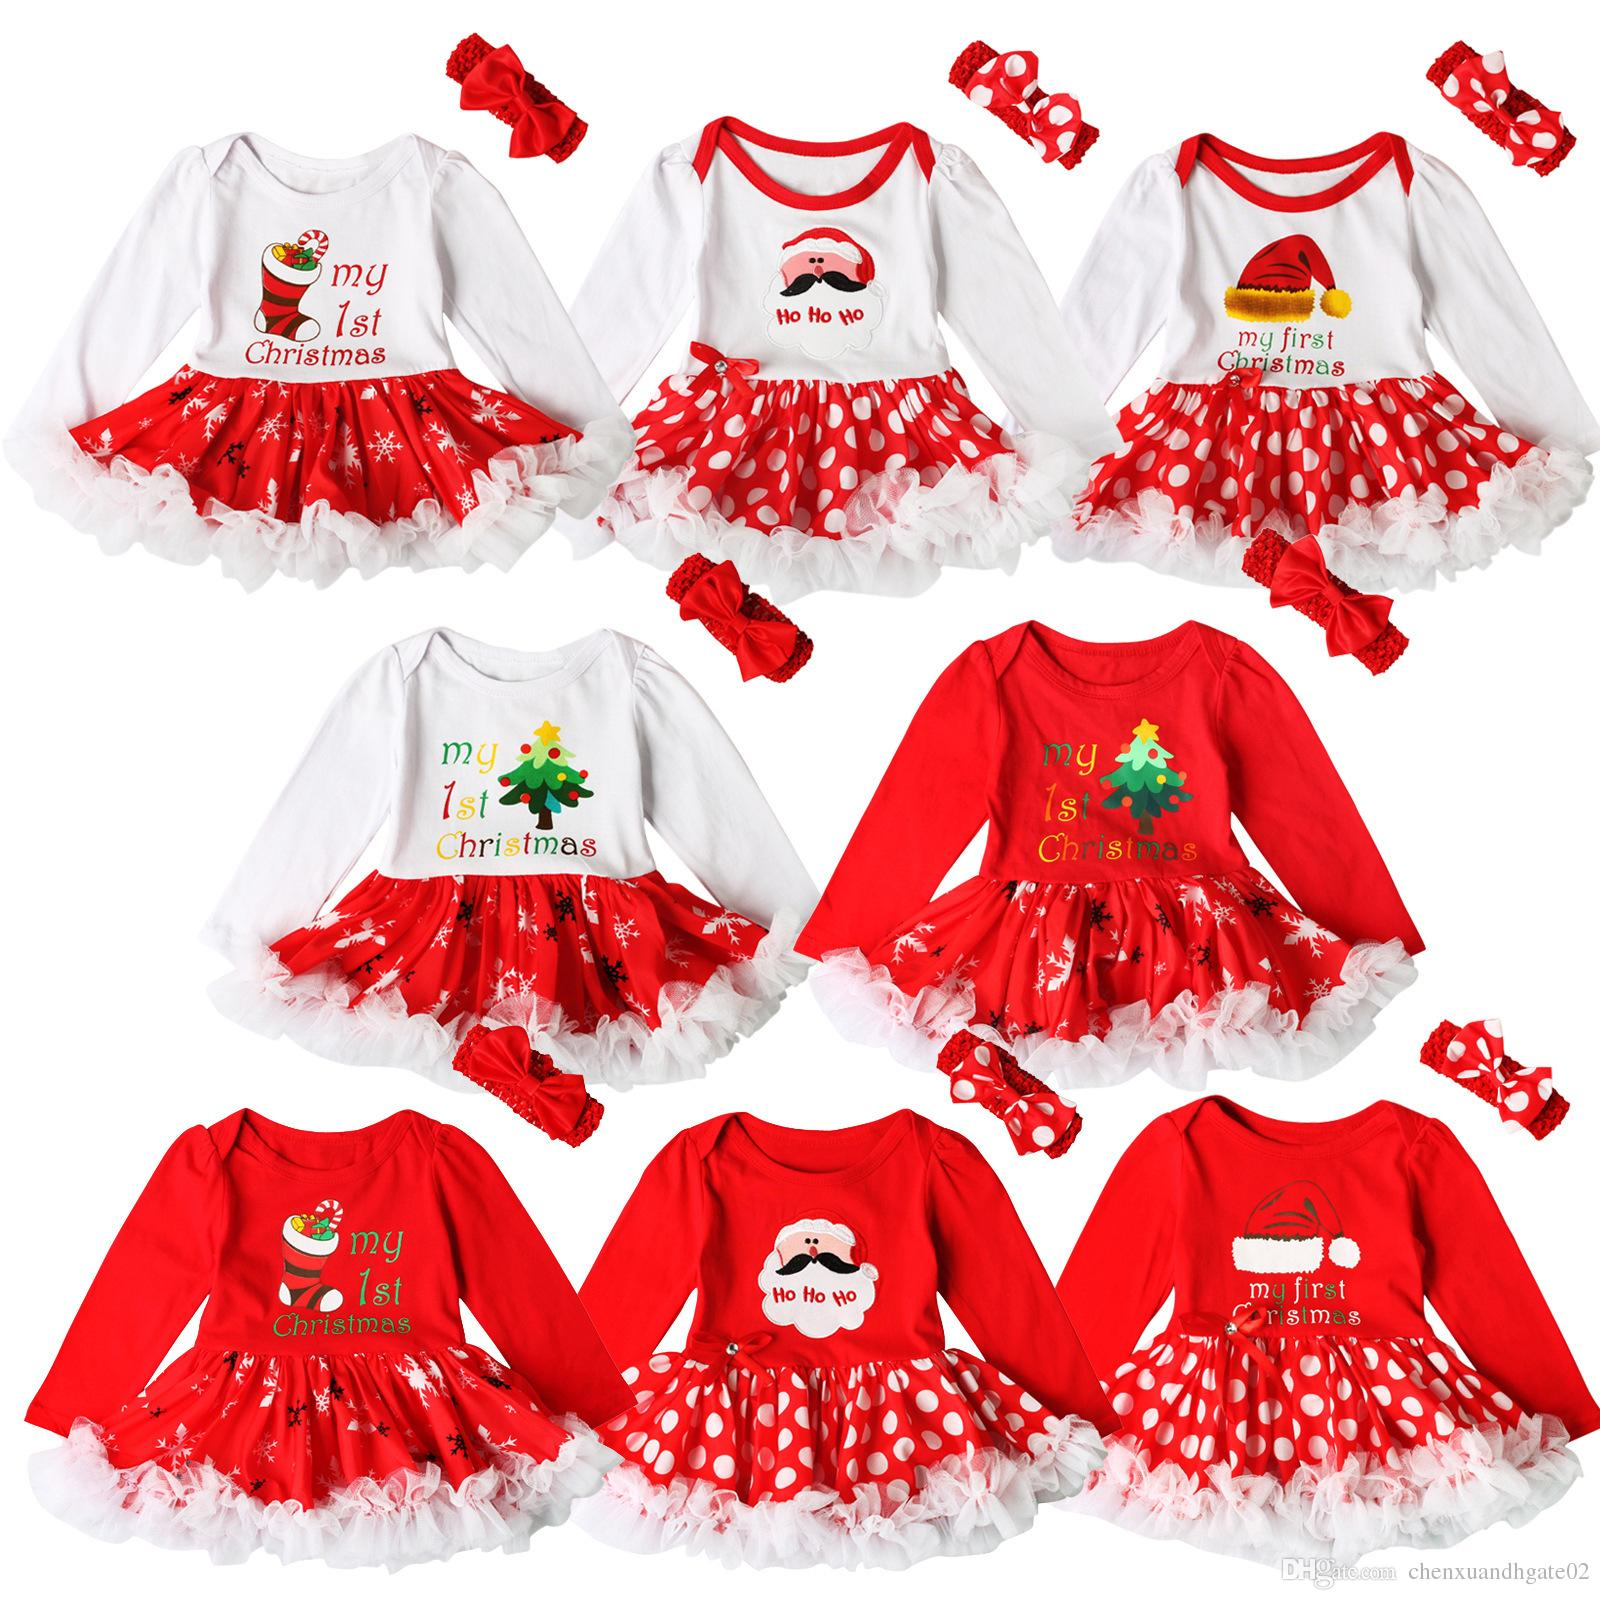 0d24c8139 2019 Newborn Christmas Clothes Baby Girls Clothing Set My First ...